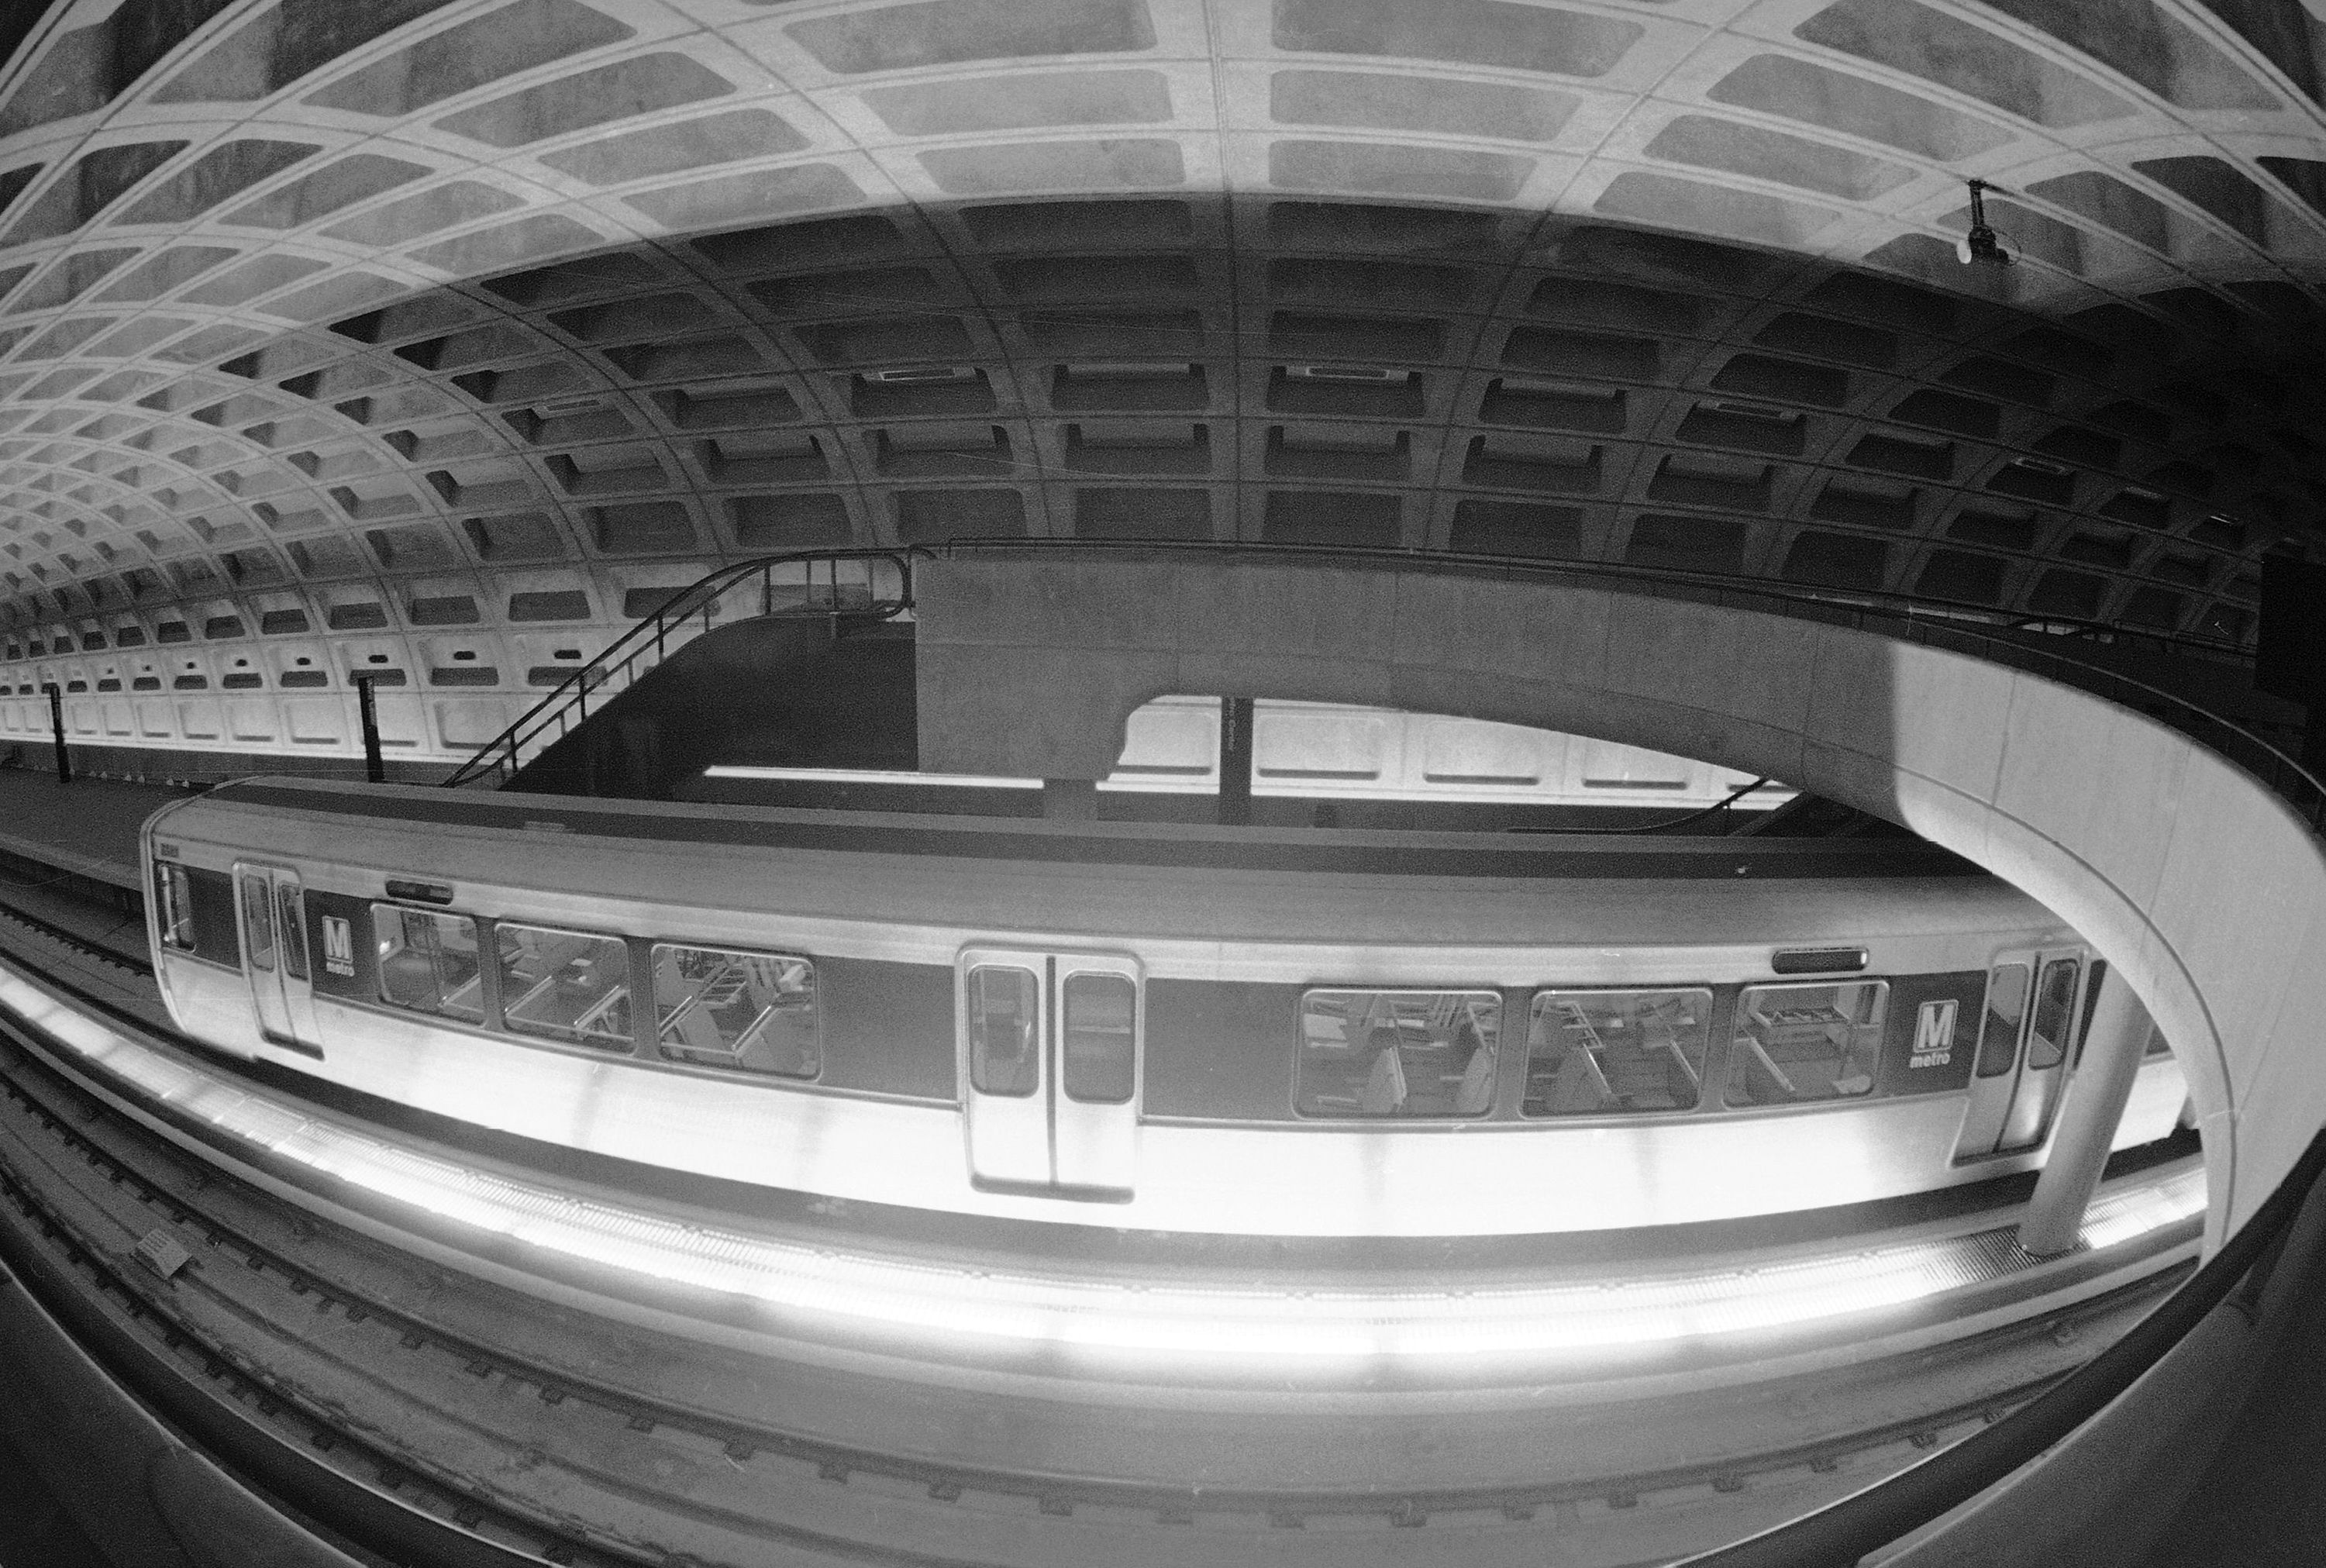 'Single most valuable' step to fix Metro track issues? Unclog drains, regulators say